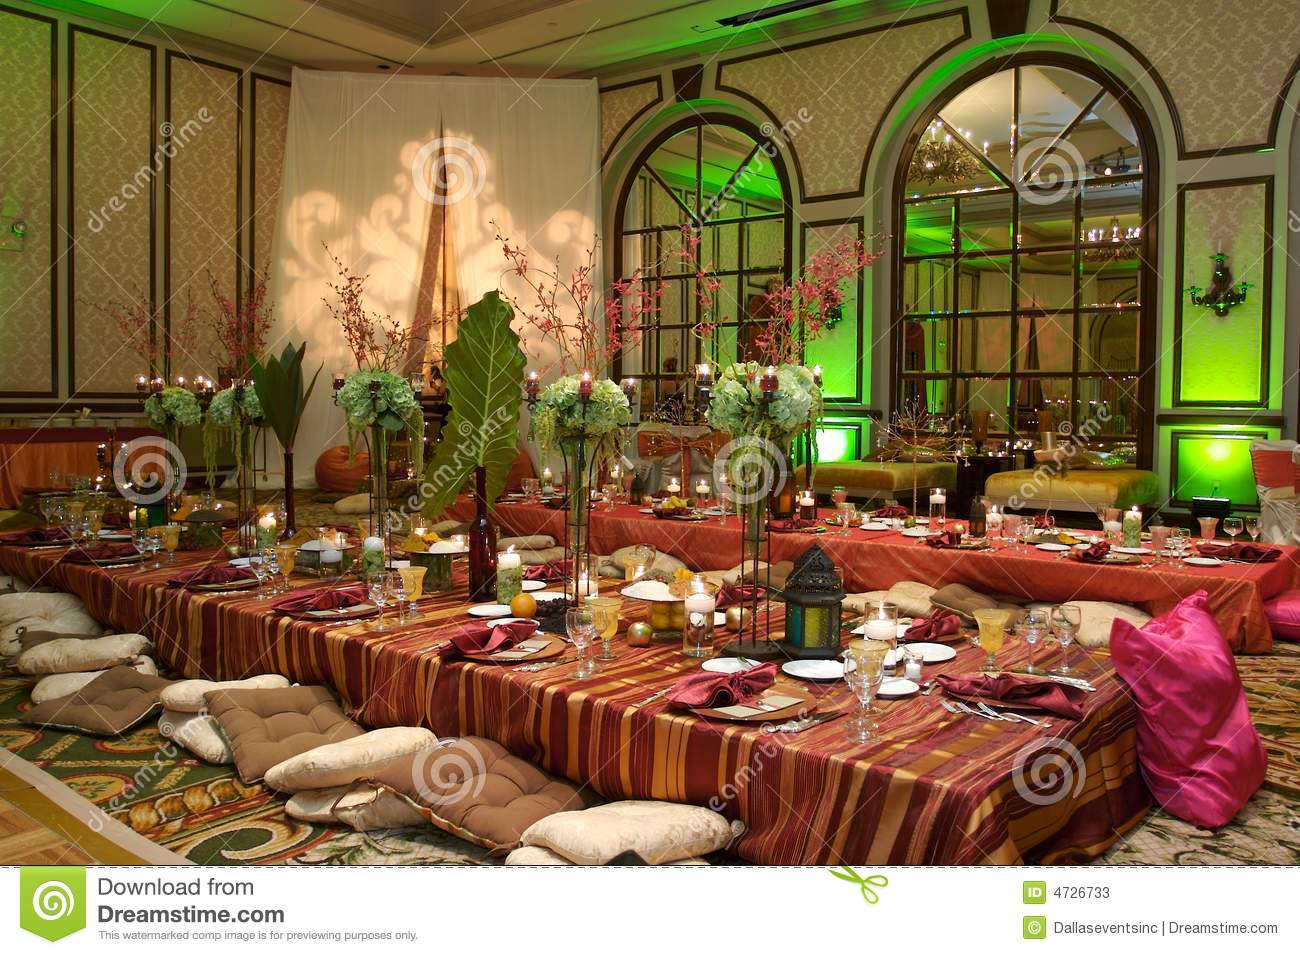 Source thumbs.dreamstime.com · Report. Moroccan Wedding Table | Moroccan Themed ... & Images: Moroccan Wedding Table